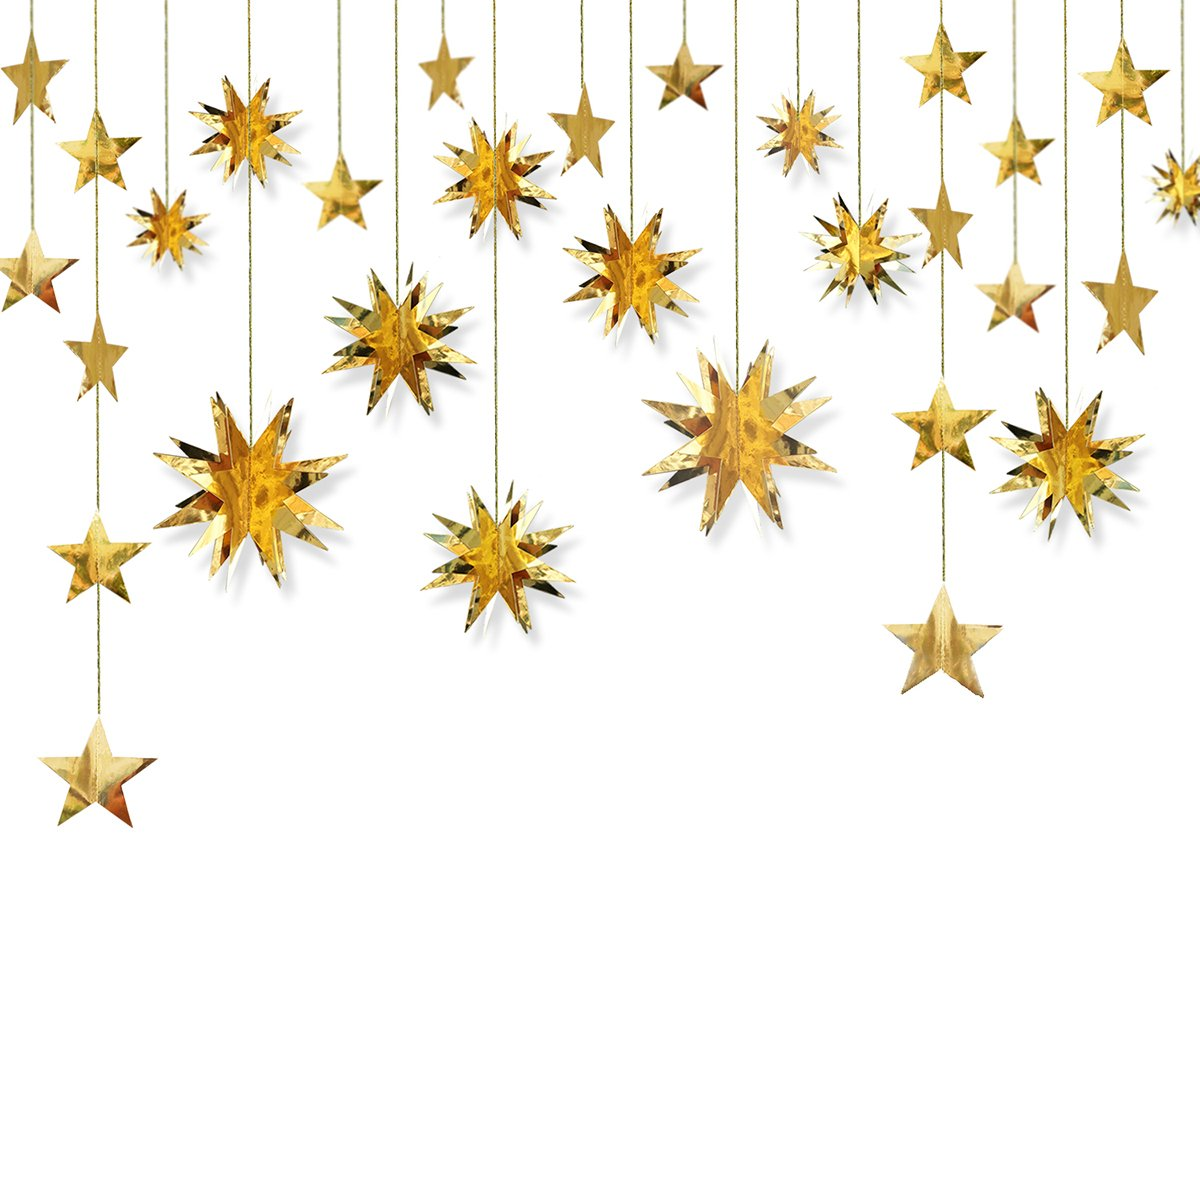 PinkBlume Gold Decorations Kit,Star Paper Garland,3D Stars Party Decor,Metallic Bunting Banner-Holiday Supplies,Birthday,Wedding,Baby Shower,Hanging Decorations for Nursery,Kids,Girls Room (4 Set).… Girls Room (4 Set).…